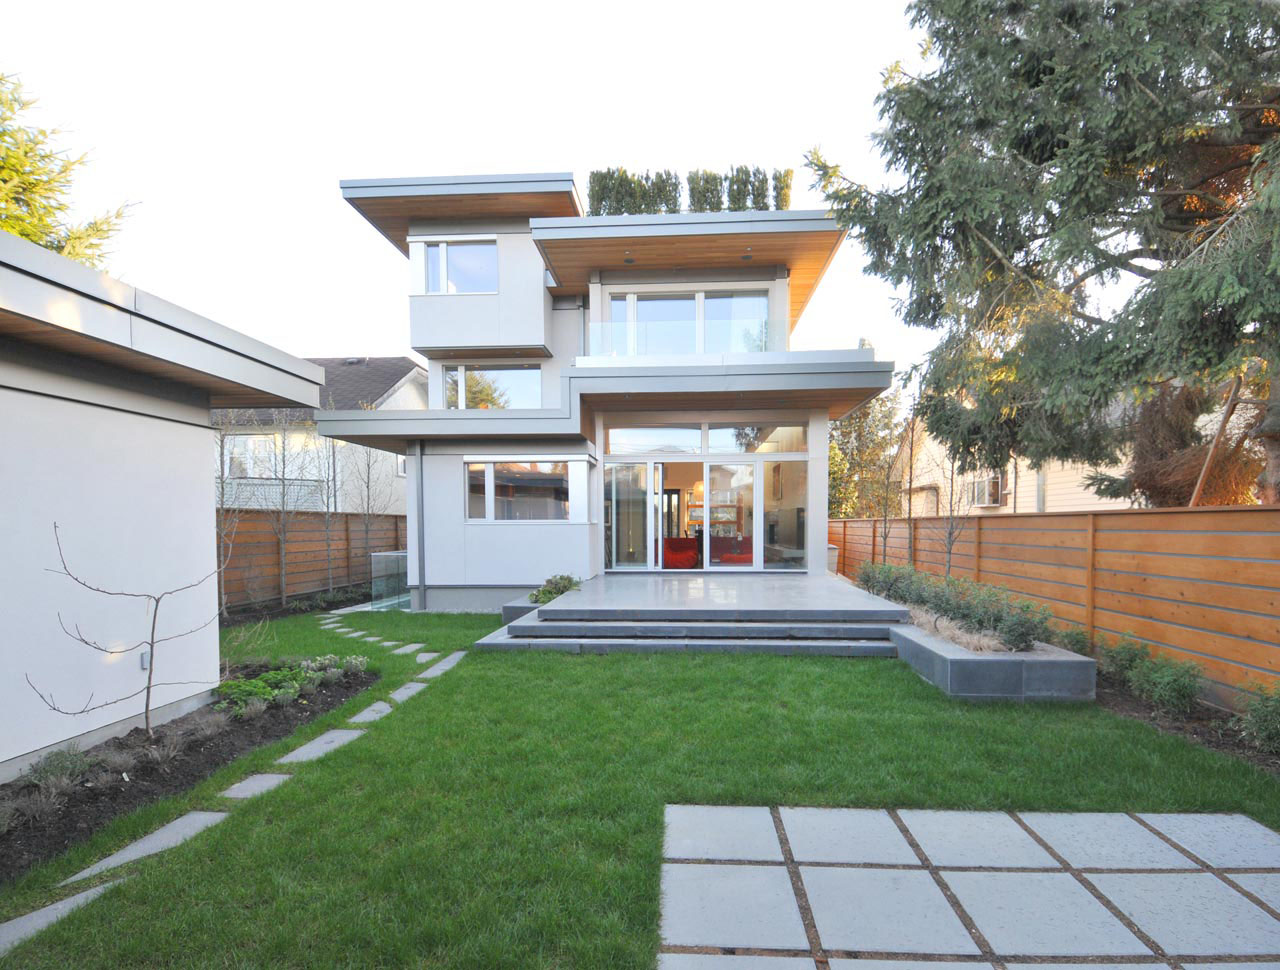 Home Design Ideas Exterior: Sustainable Home Design In Vancouver